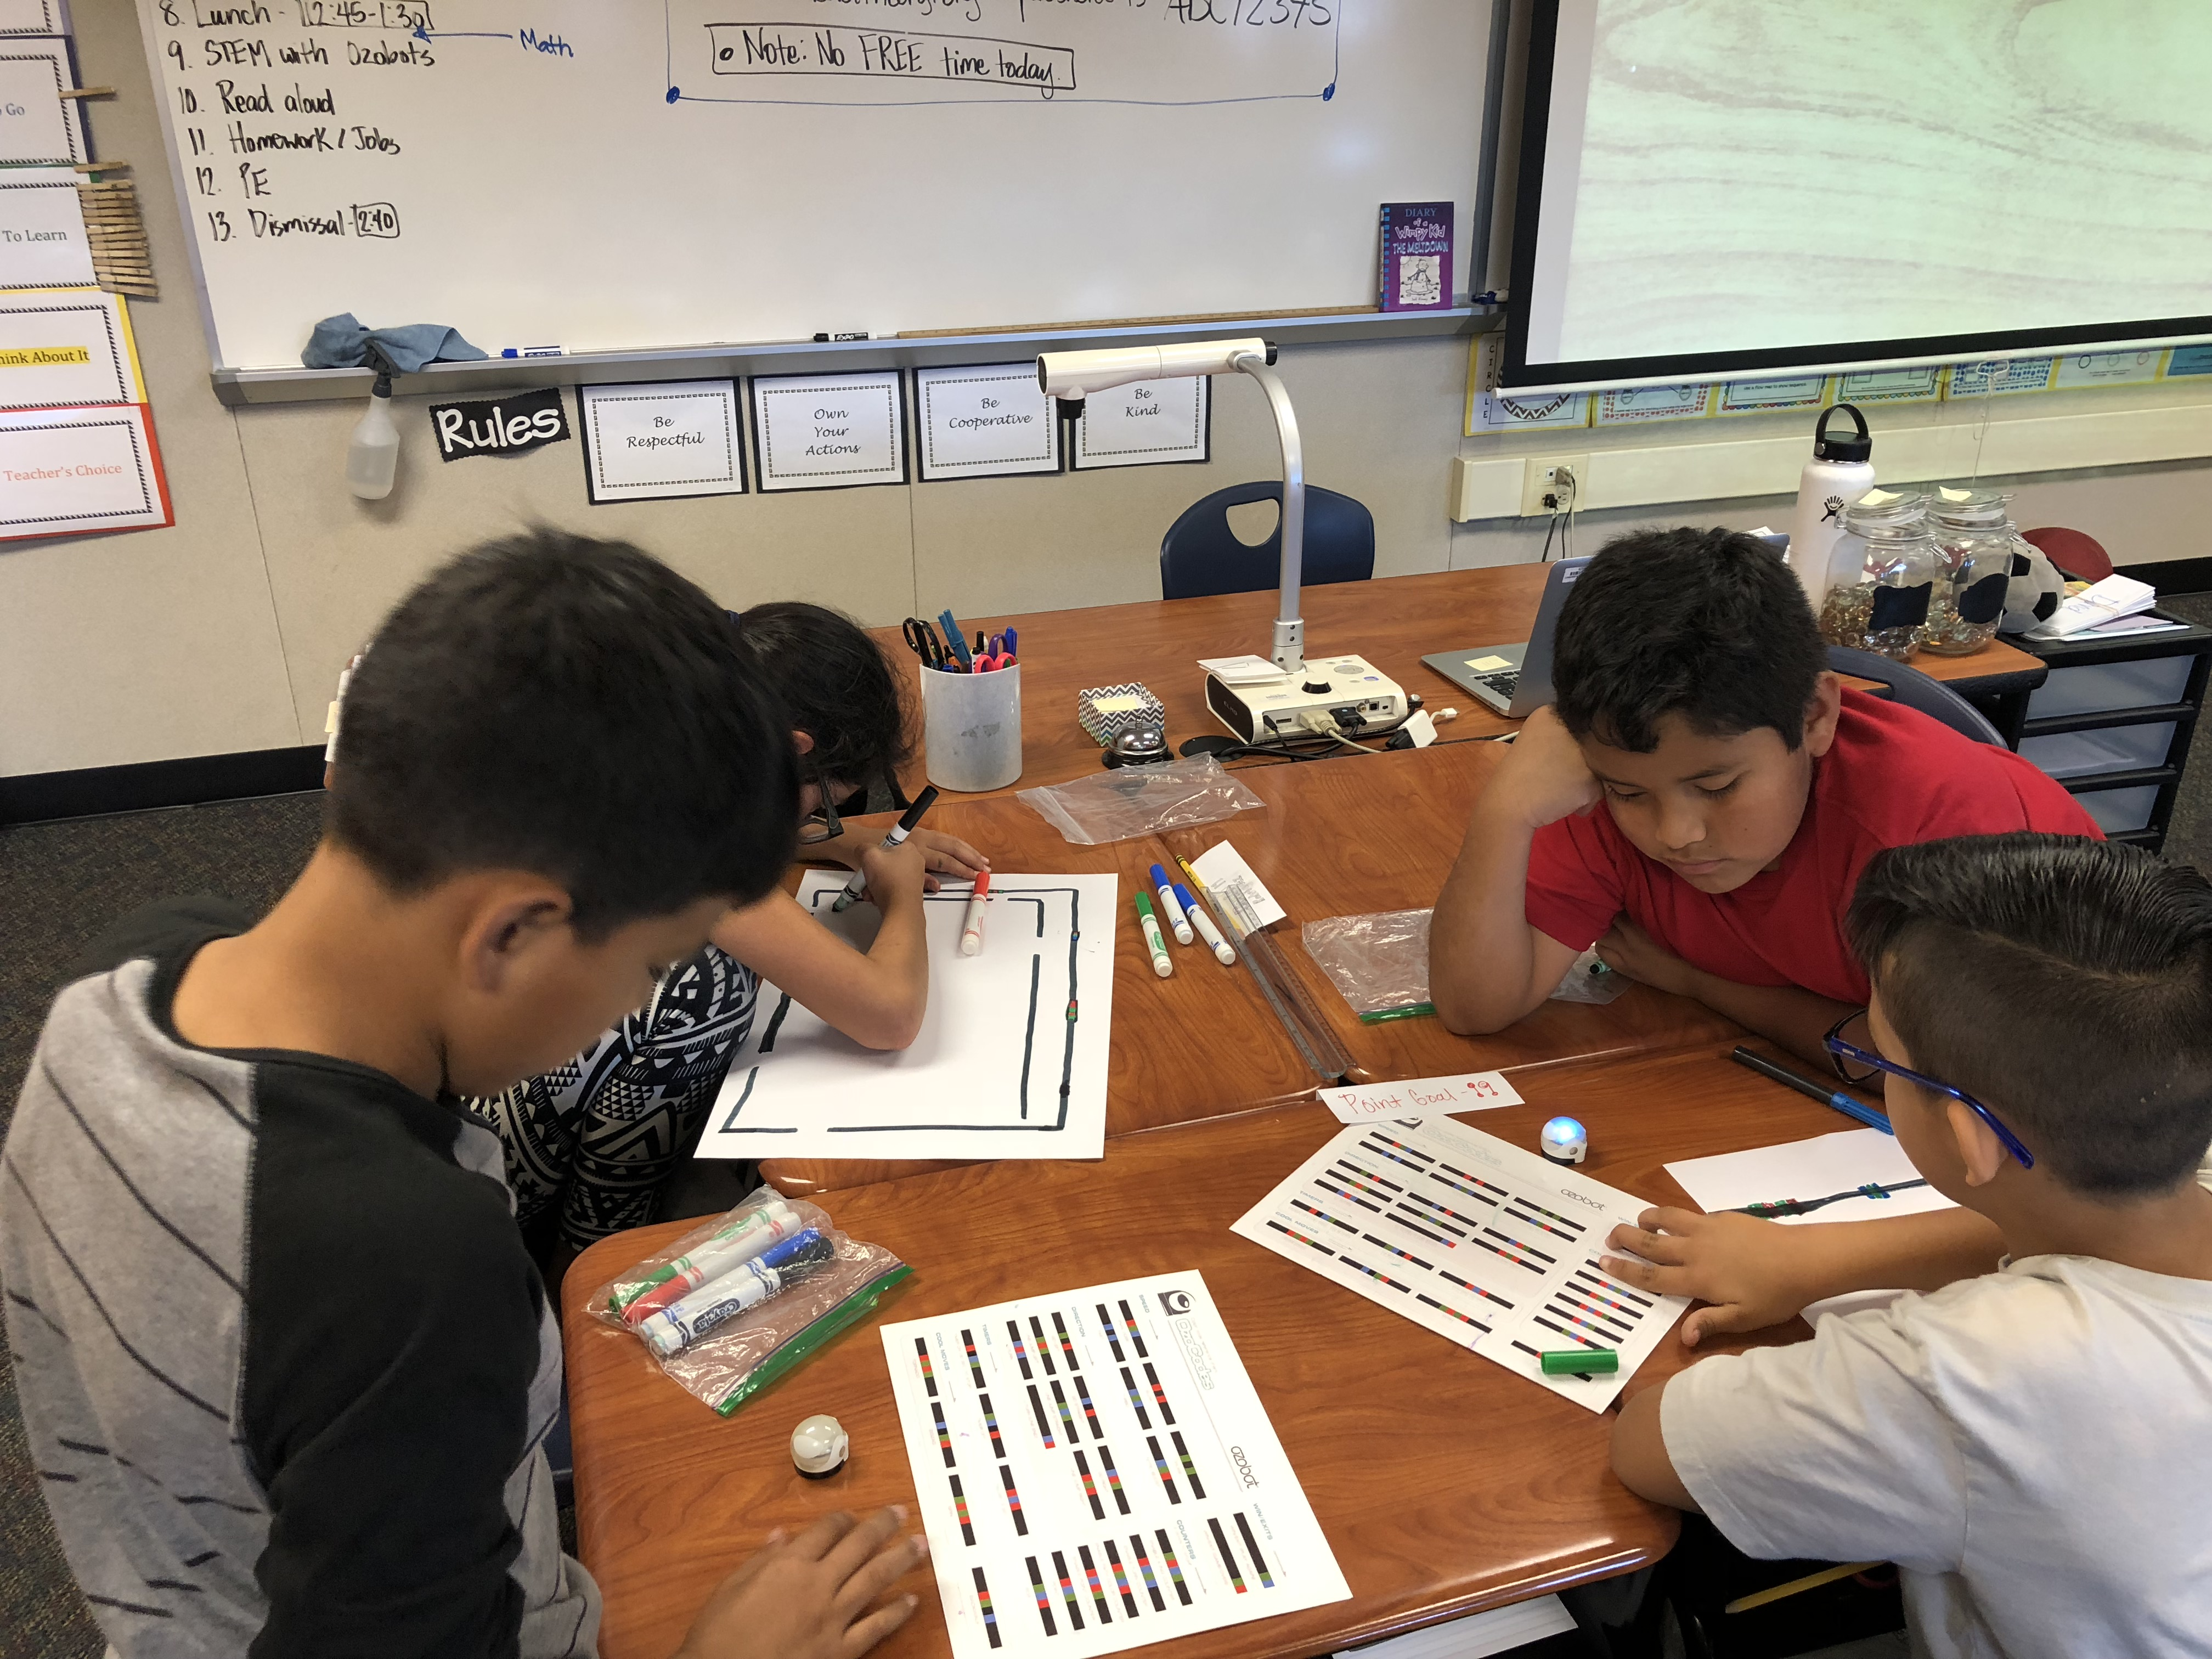 Programing ozobots